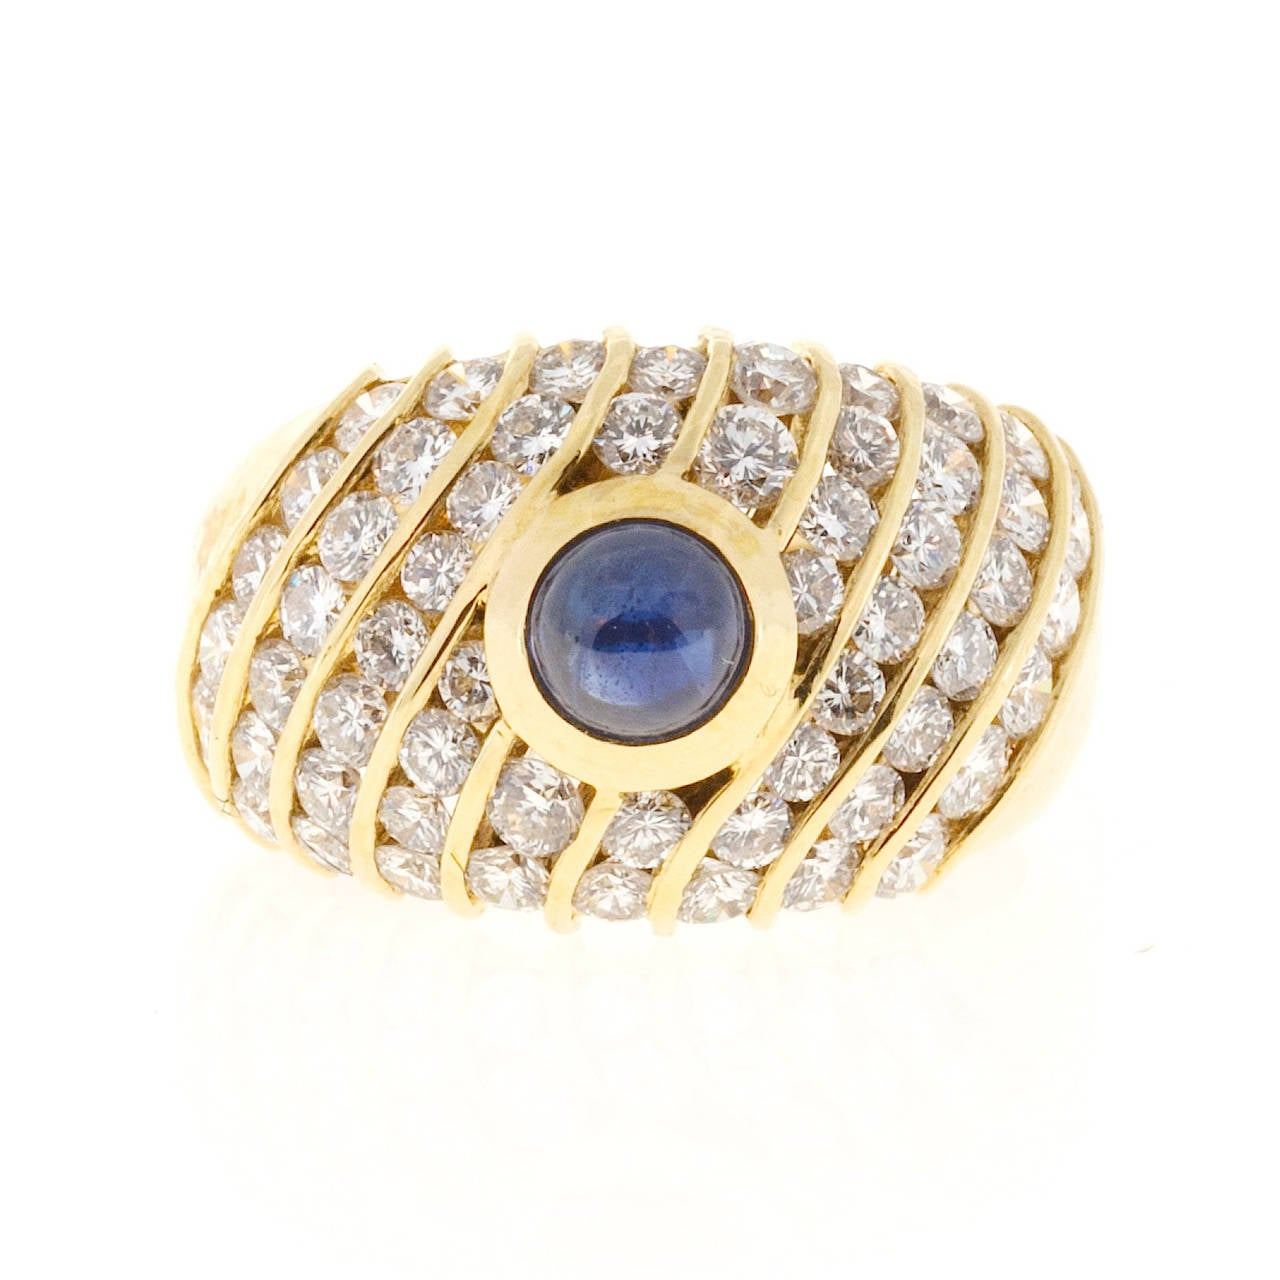 Sapphire Cabochon Diamond Gold Dome Ring In Good Condition For Sale In Stamford, CT